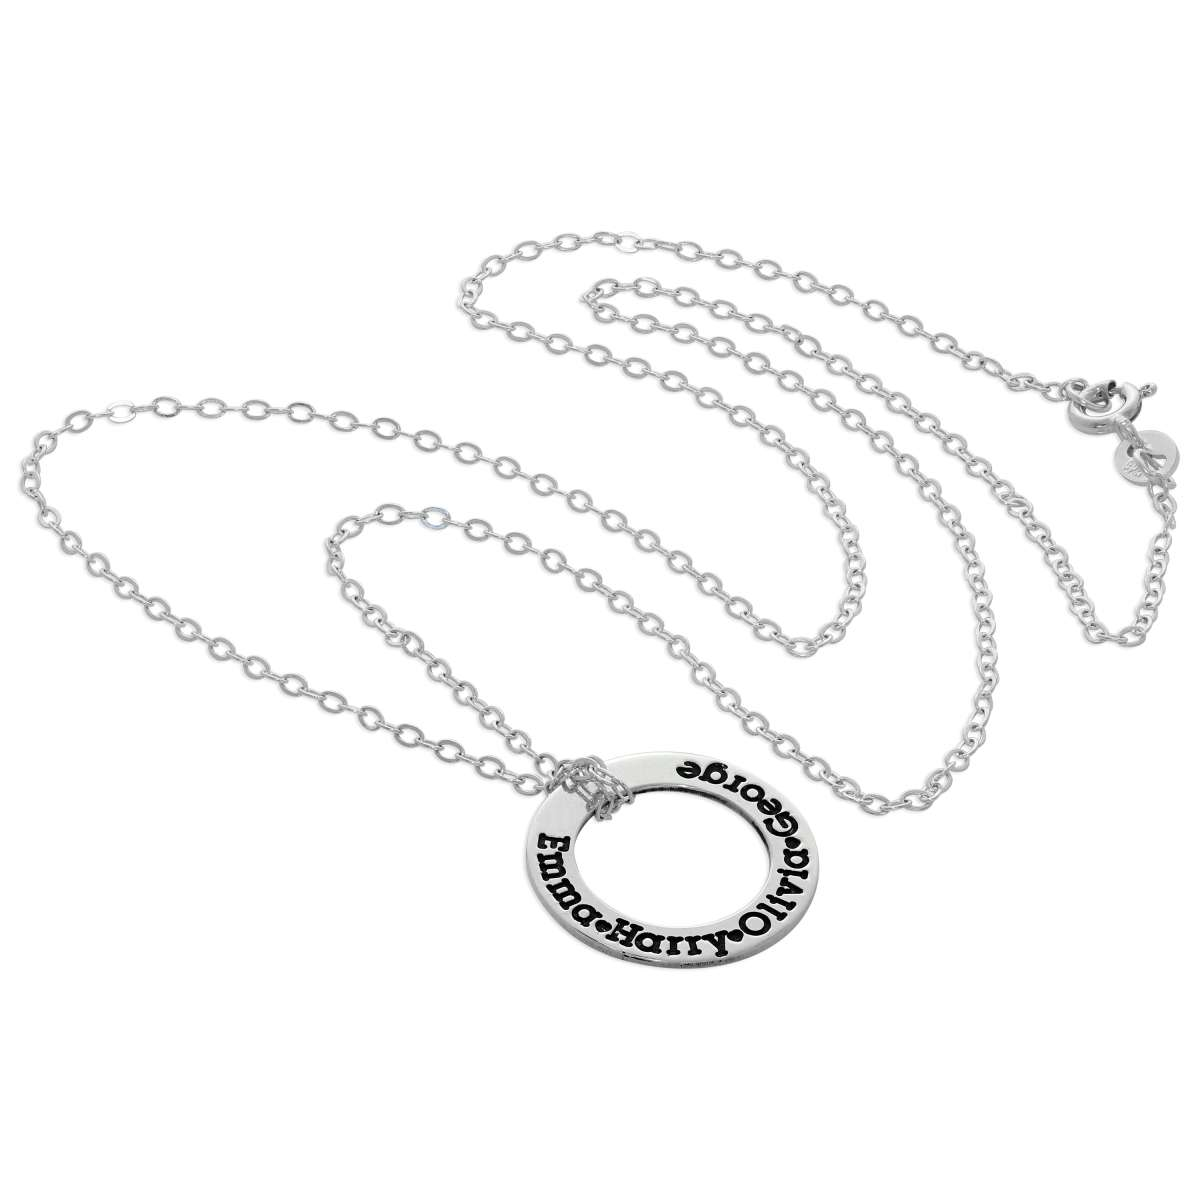 Alterative image for Bespoke Sterling Silver Name Circle Necklace 16-28 Inches